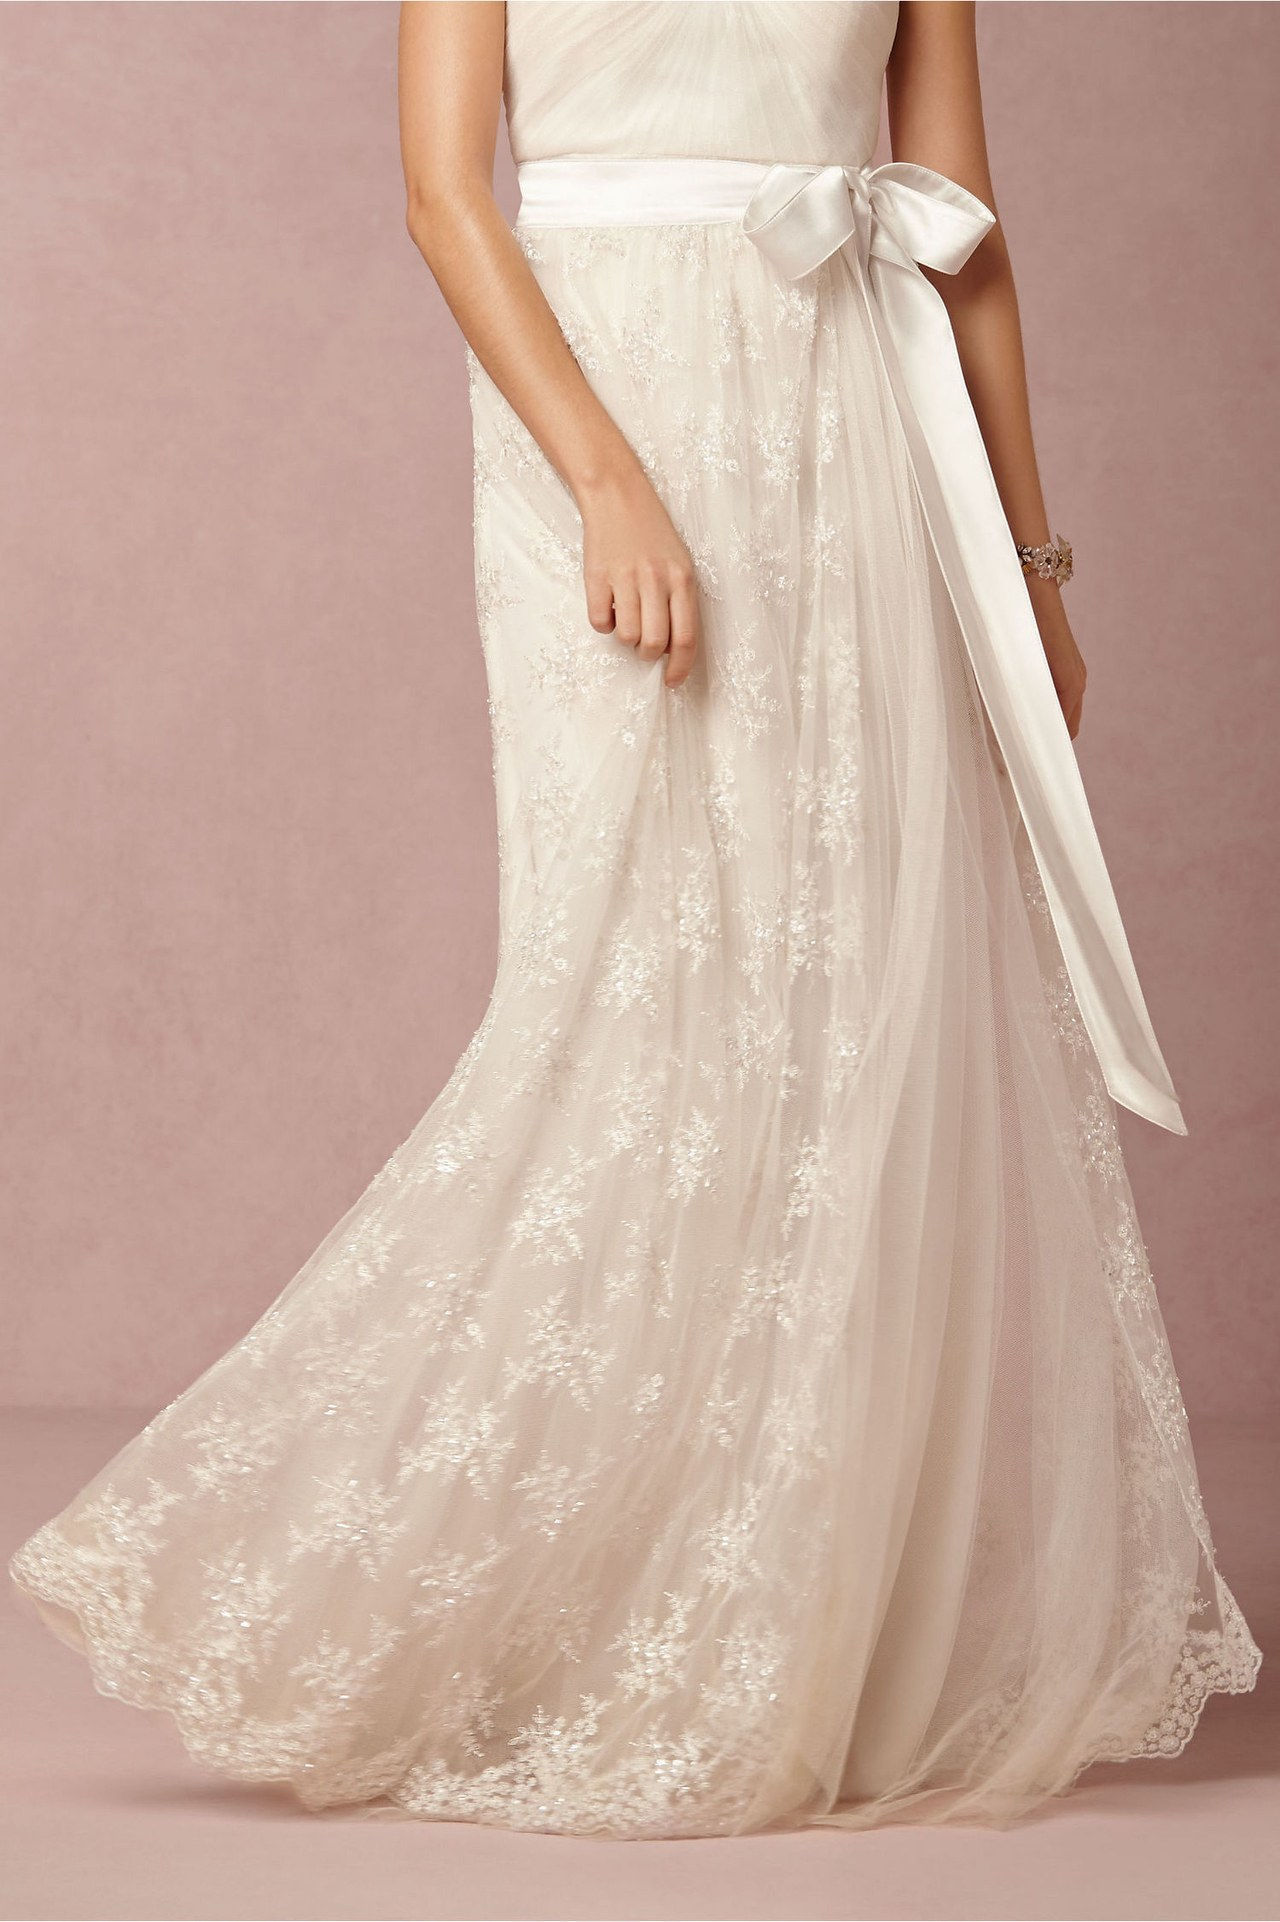 2c 2 in 1 wedding dresses wedding gowns mix and match wedding dresses bhldn 0430 courtesy